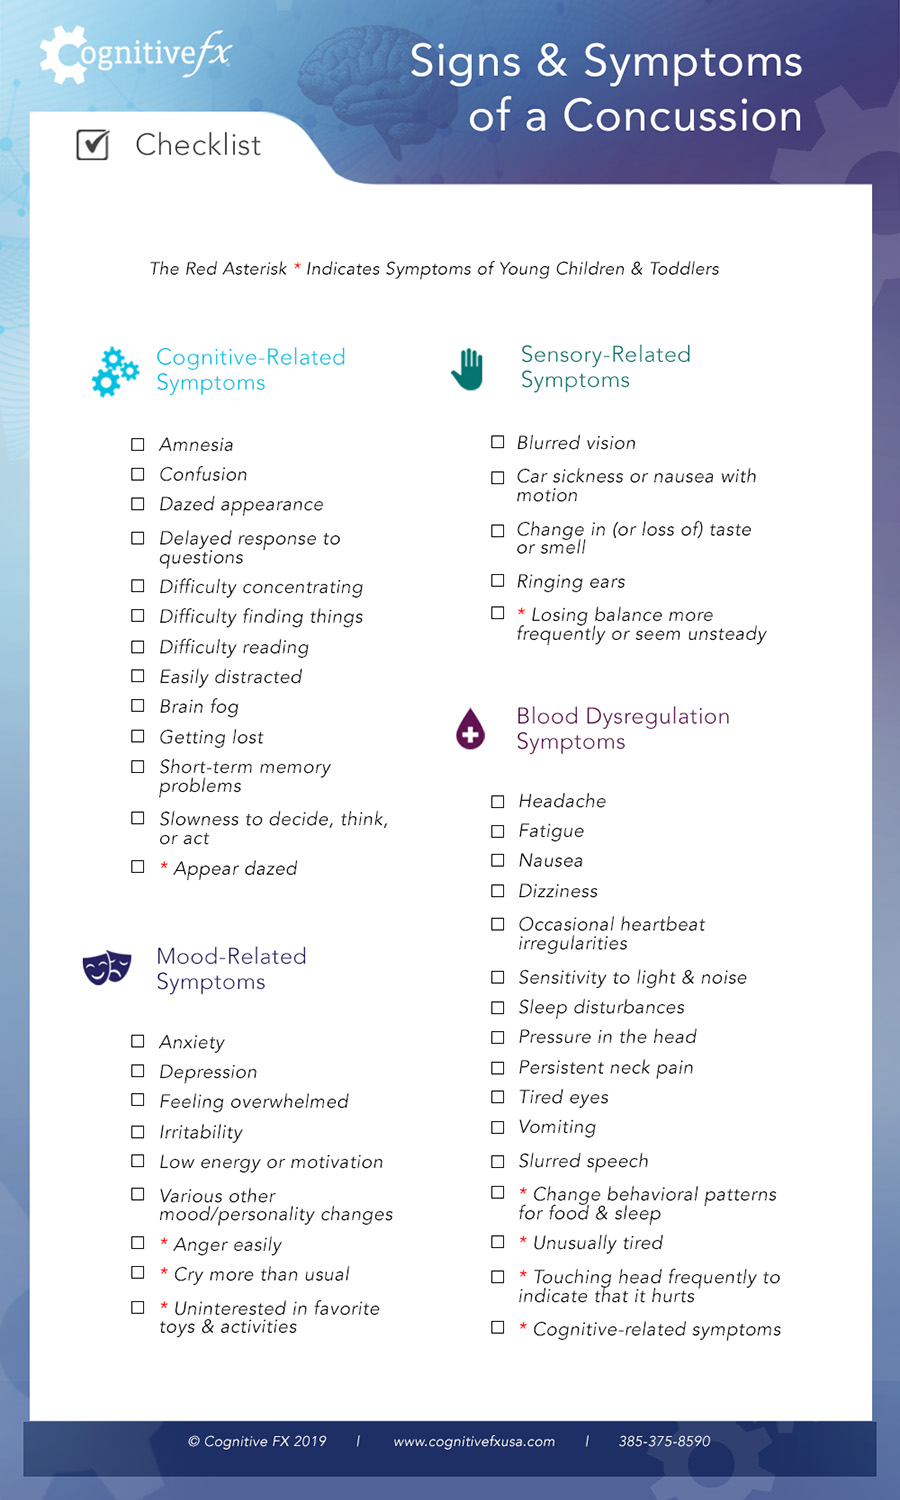 This signs and symptoms of a concussion checklist is part of a guide that answers commonly asked questions about concussion symptoms.